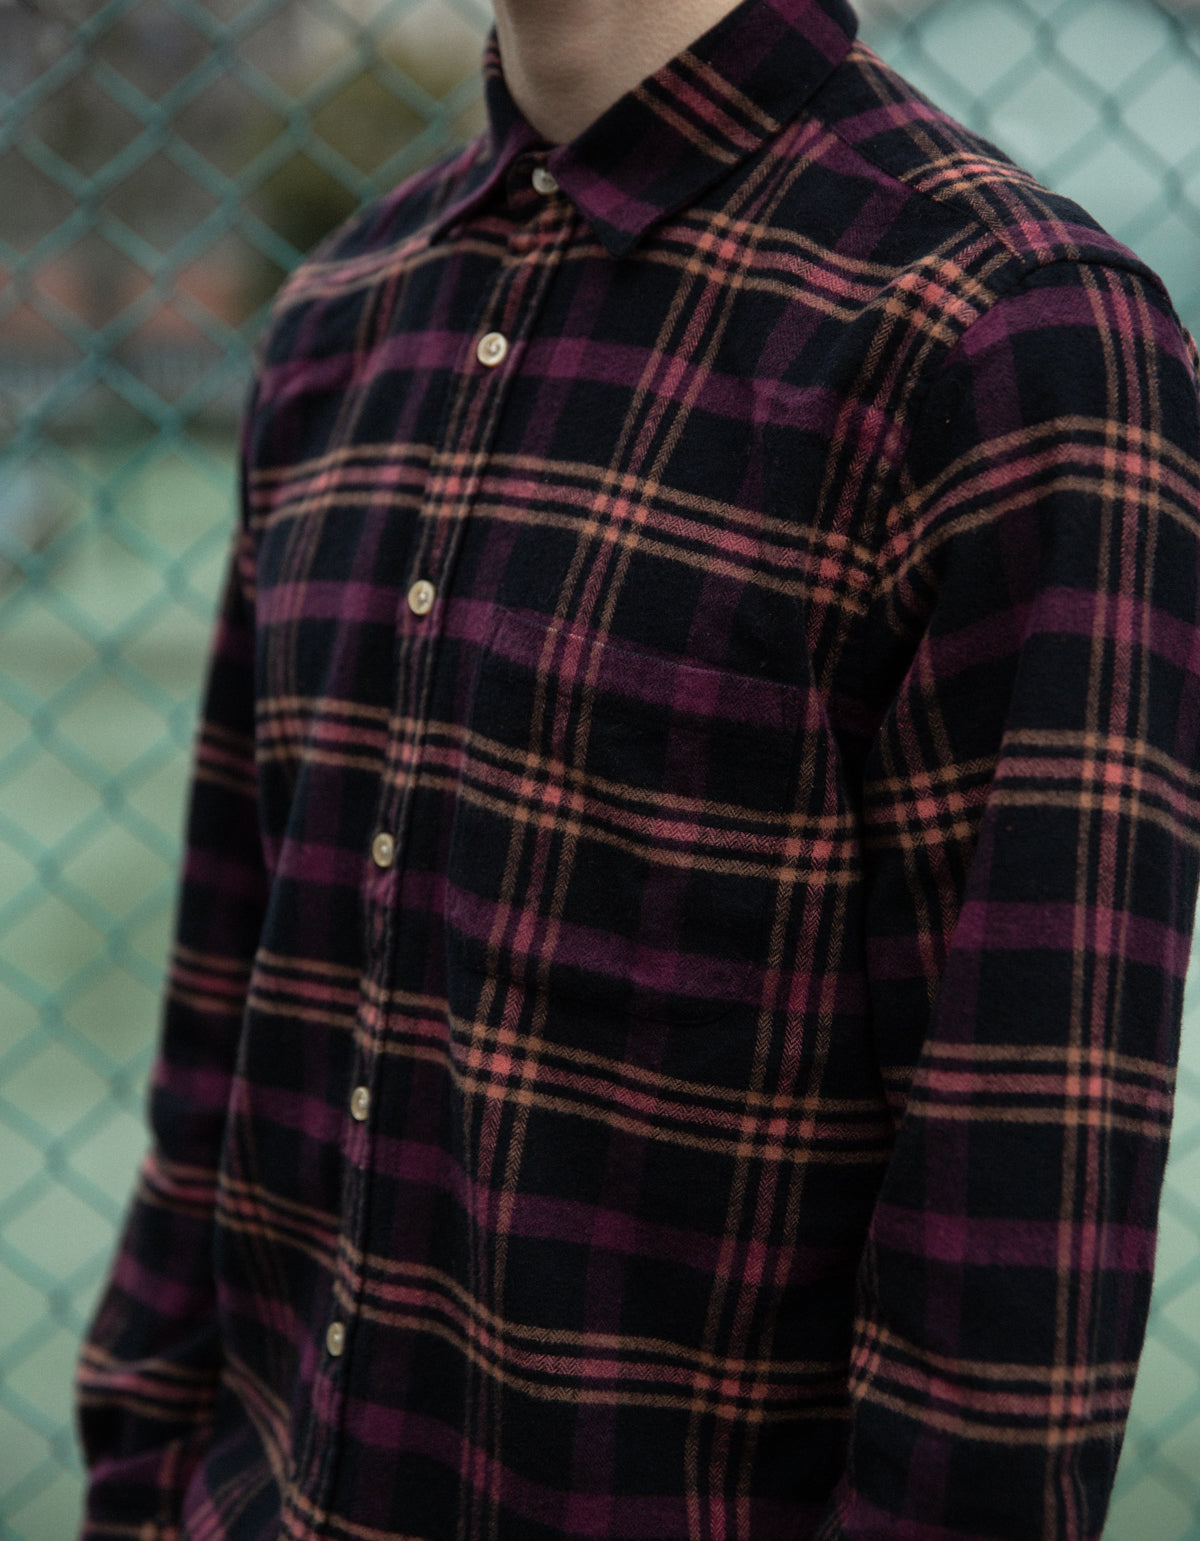 Portuguese Flannel Compact Long Sleeve Shirt Plaid